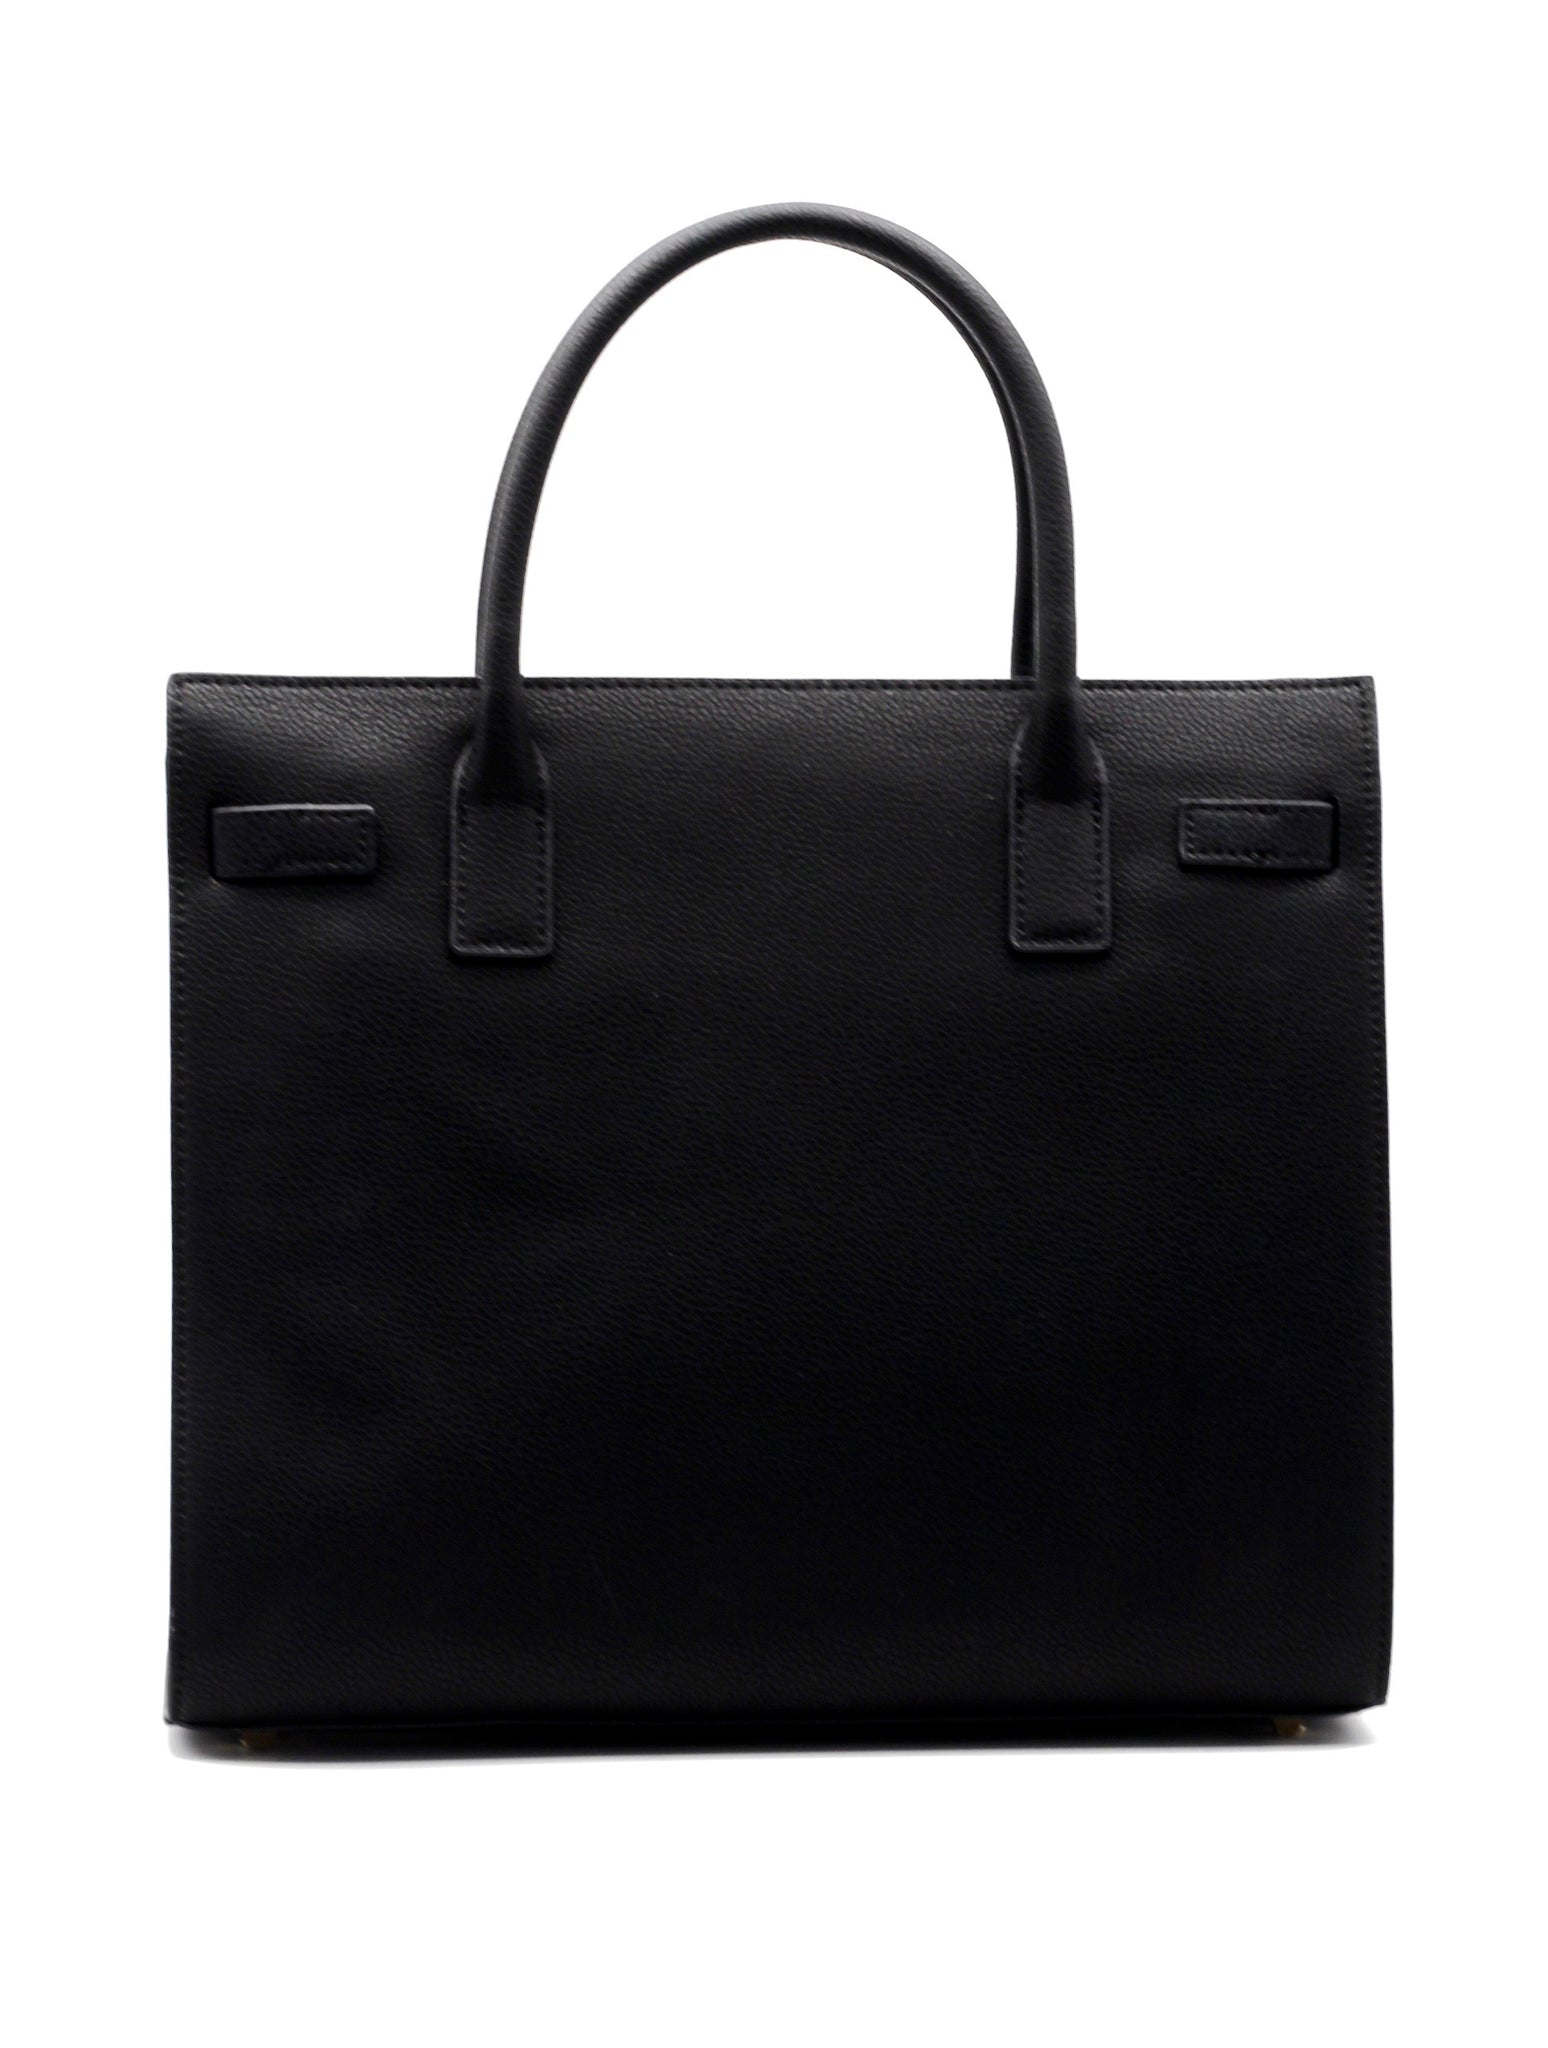 Miss Eleanor Grande Bag - Black